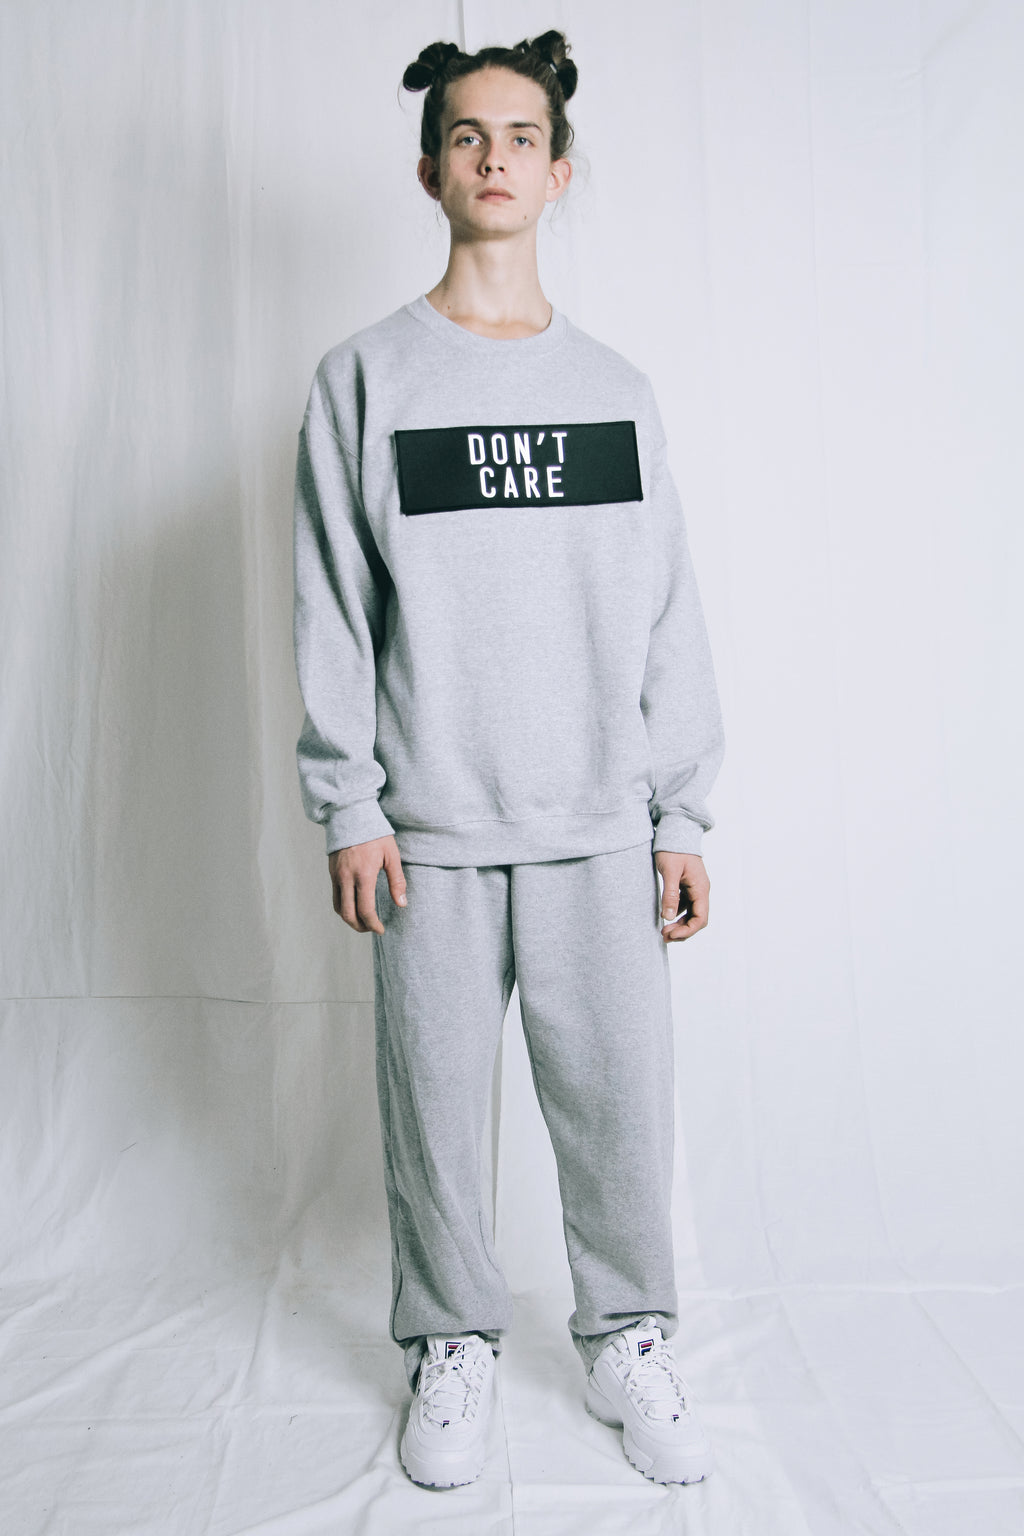 Statement sweater // care/don't care grey